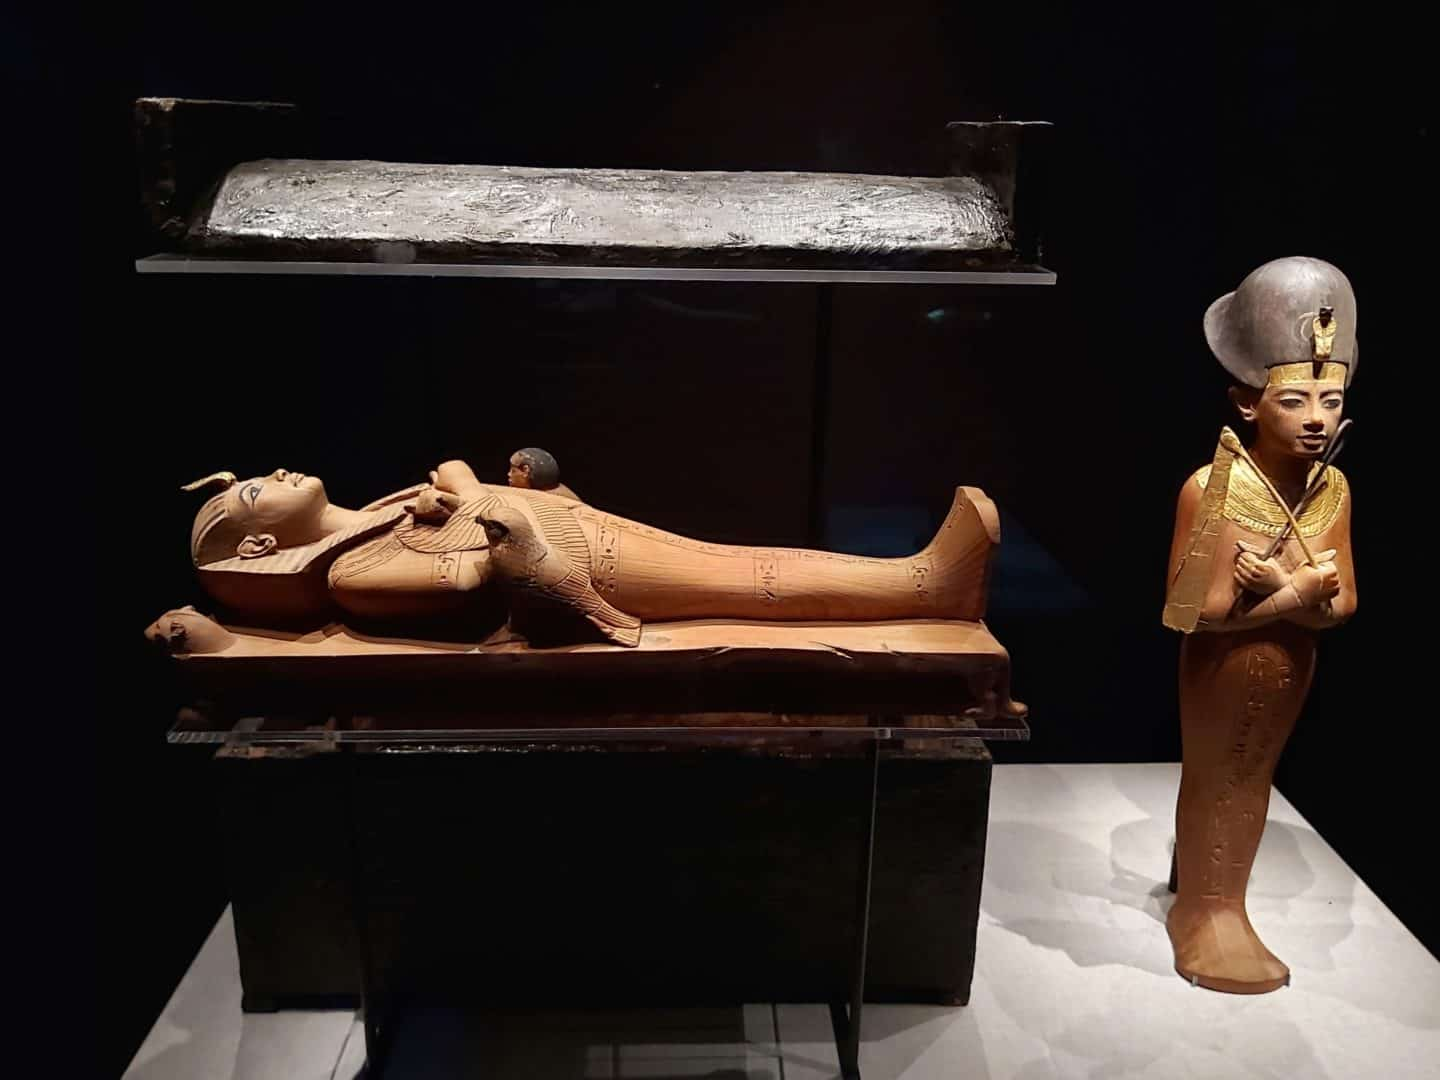 Two miniature statues. One is of Tutankhamun lying down as per the death mask. The other is standing up.